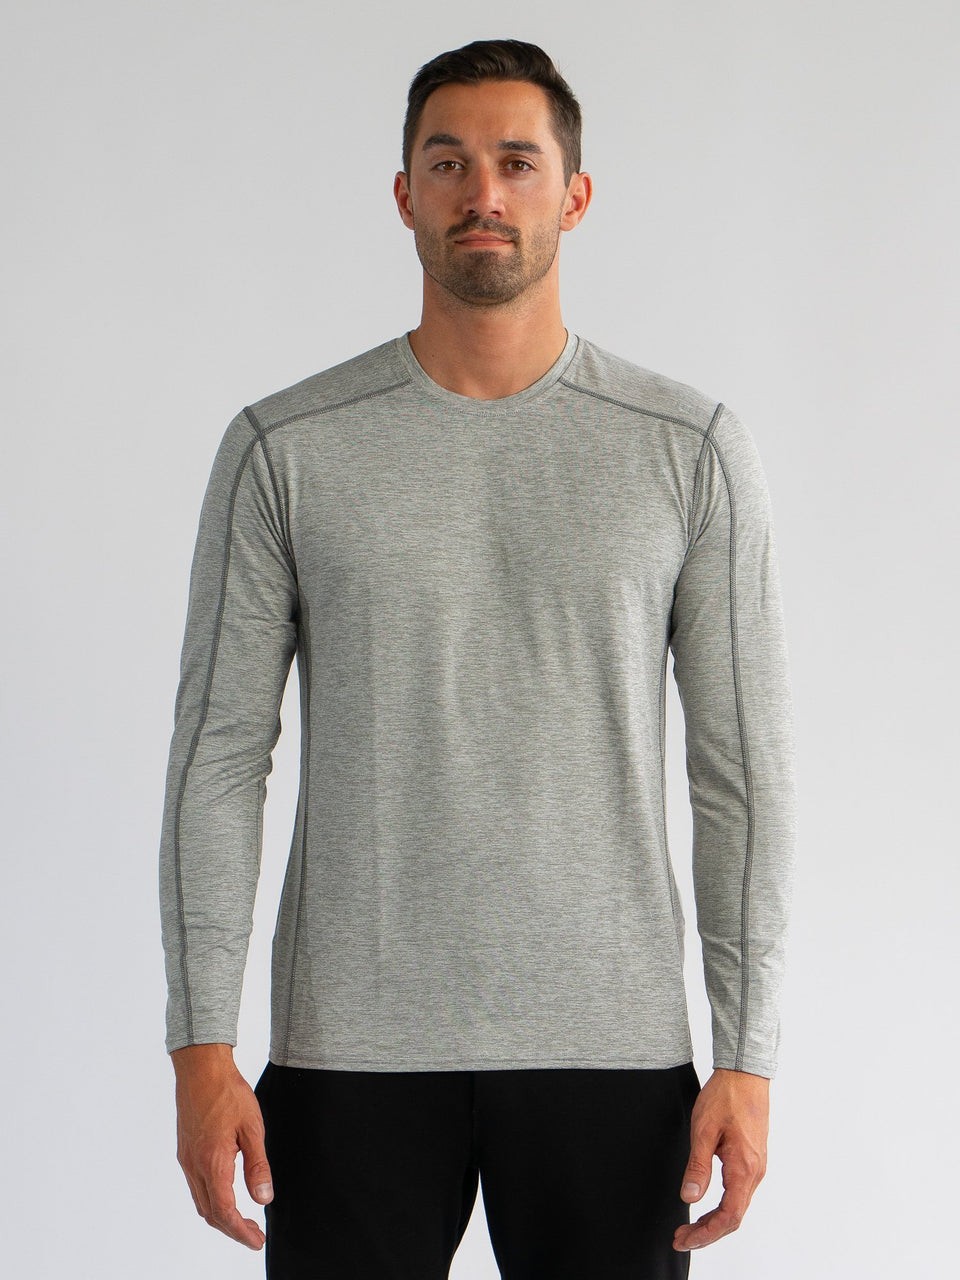 LS Cooldown - SODO Apparel - SHIRTS